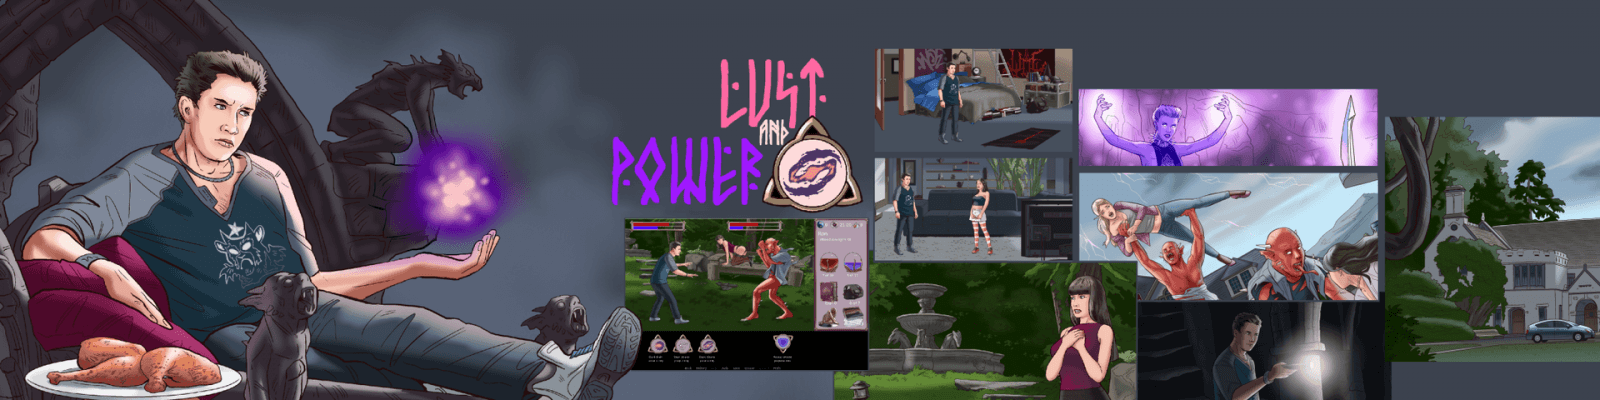 Lust And Power Porn Game Apk Download Free 3